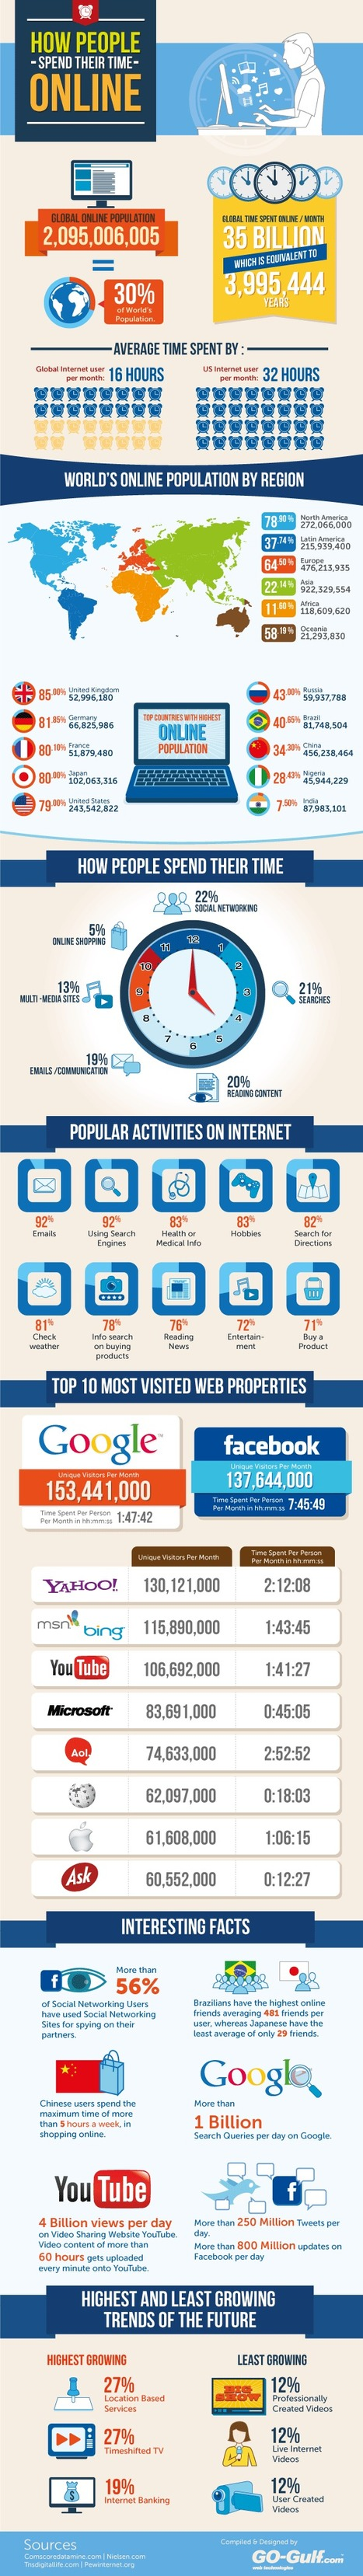 How People Spend Their Time Online [Infographic] | technology | Scoop.it